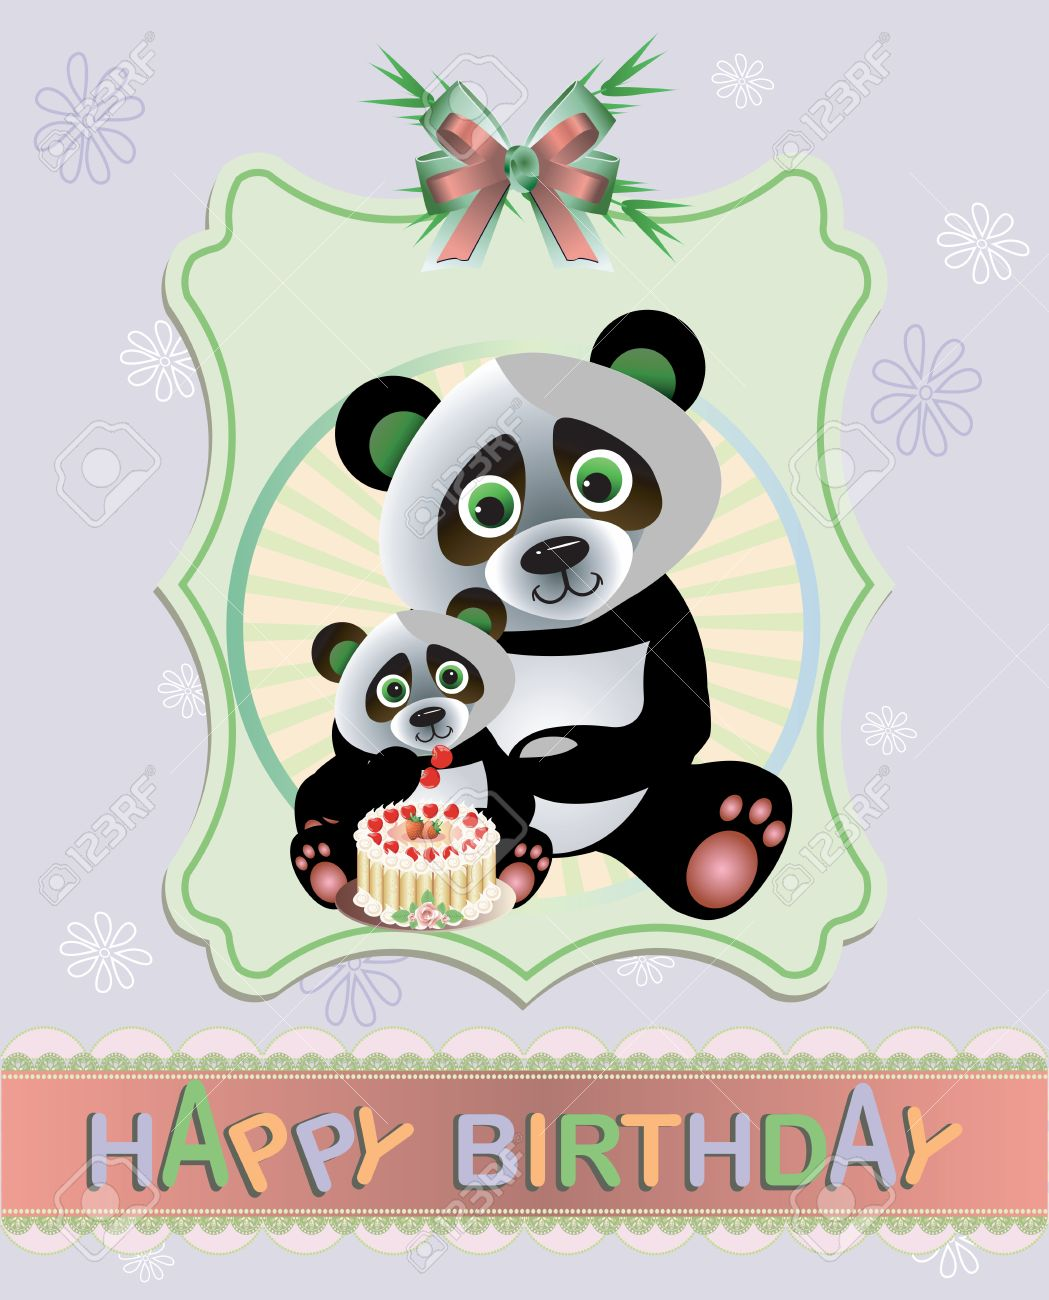 birthday greeting pictures funny ; 21732039-funny-panda-birthday-greeting-card